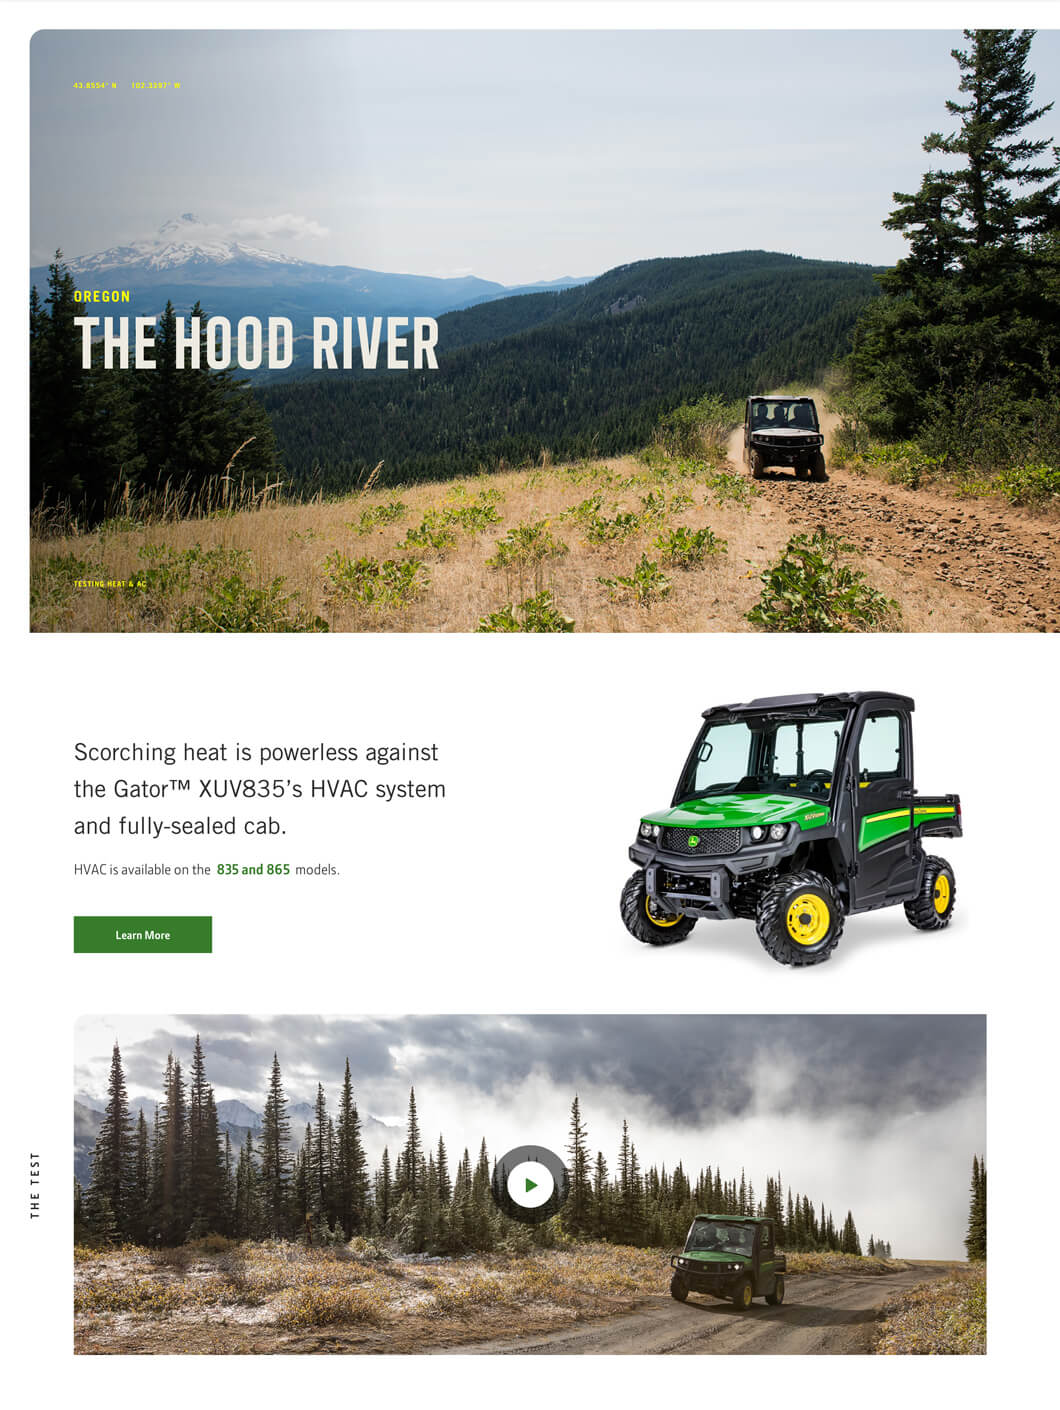 A landing page detailing an excursion for the Gator in the Hood River valley